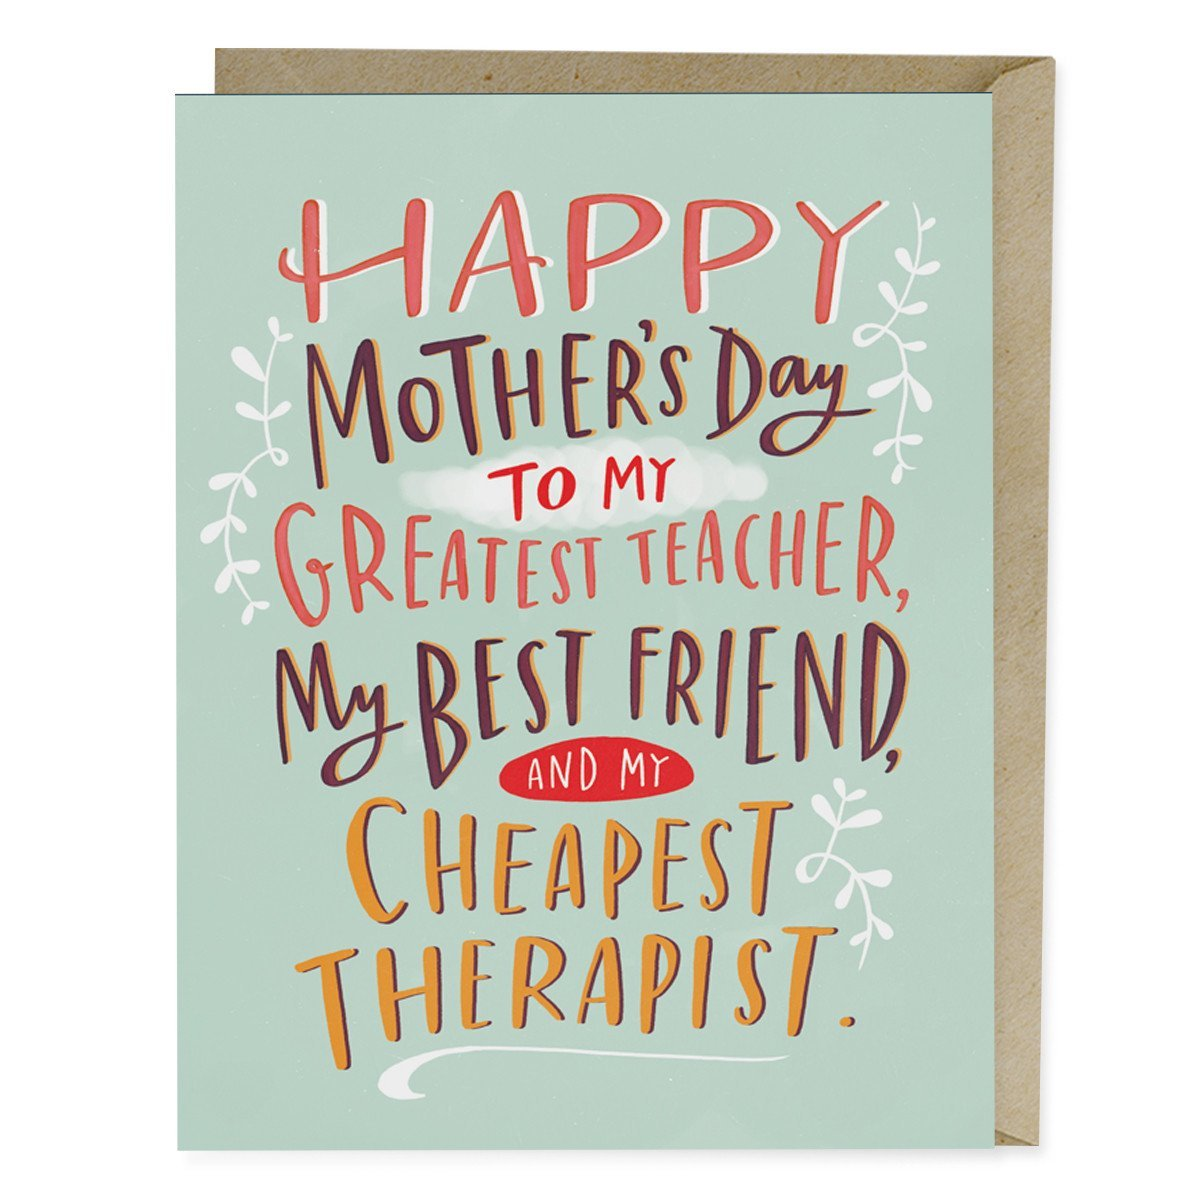 Cheapist Therapist Mothers Day Card